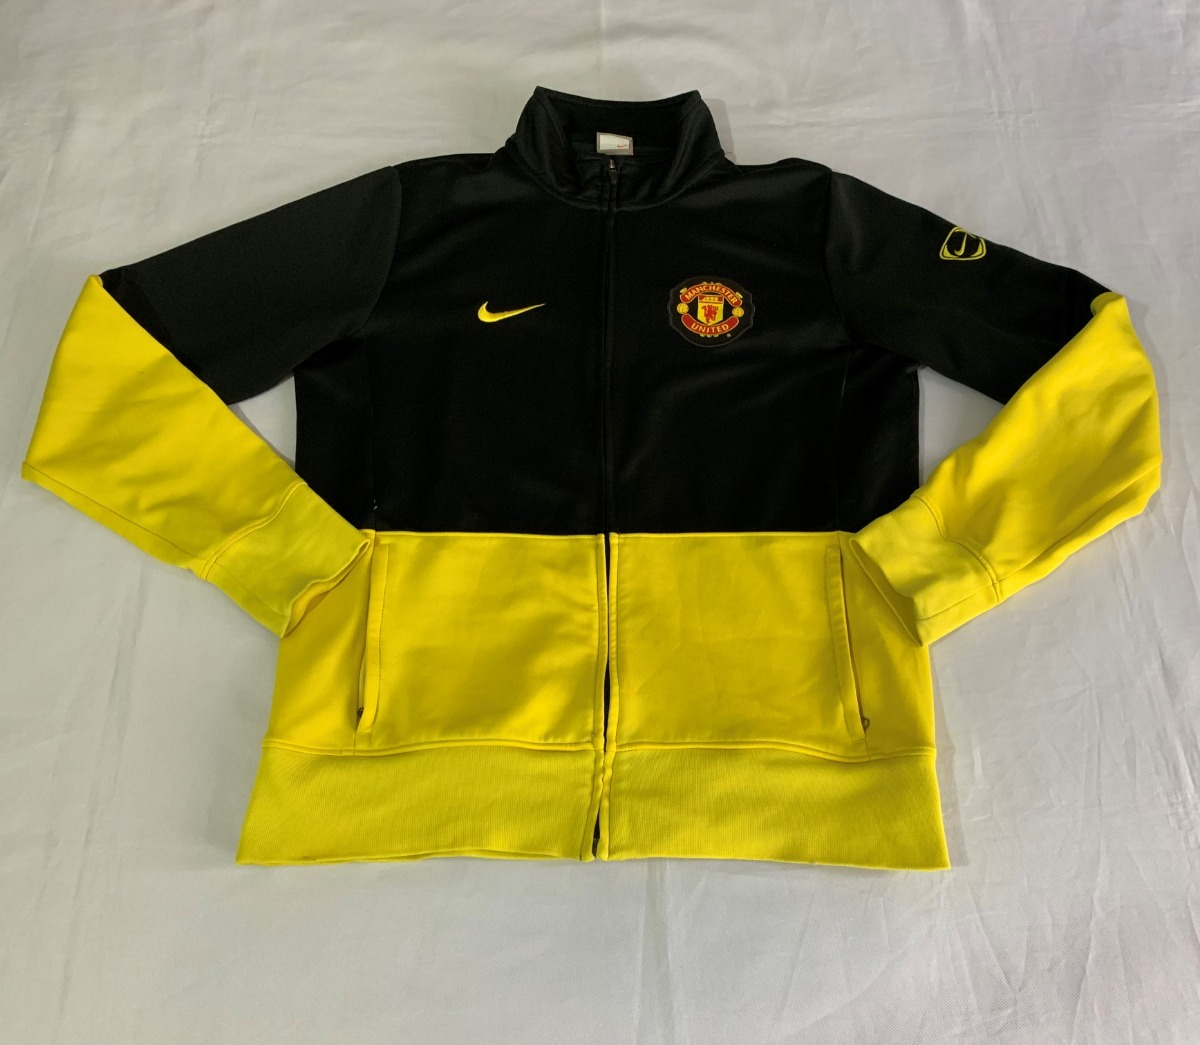 buy online 80754 c558d Jersey Manchester United Jacket Nike Champions League - $ 699.00